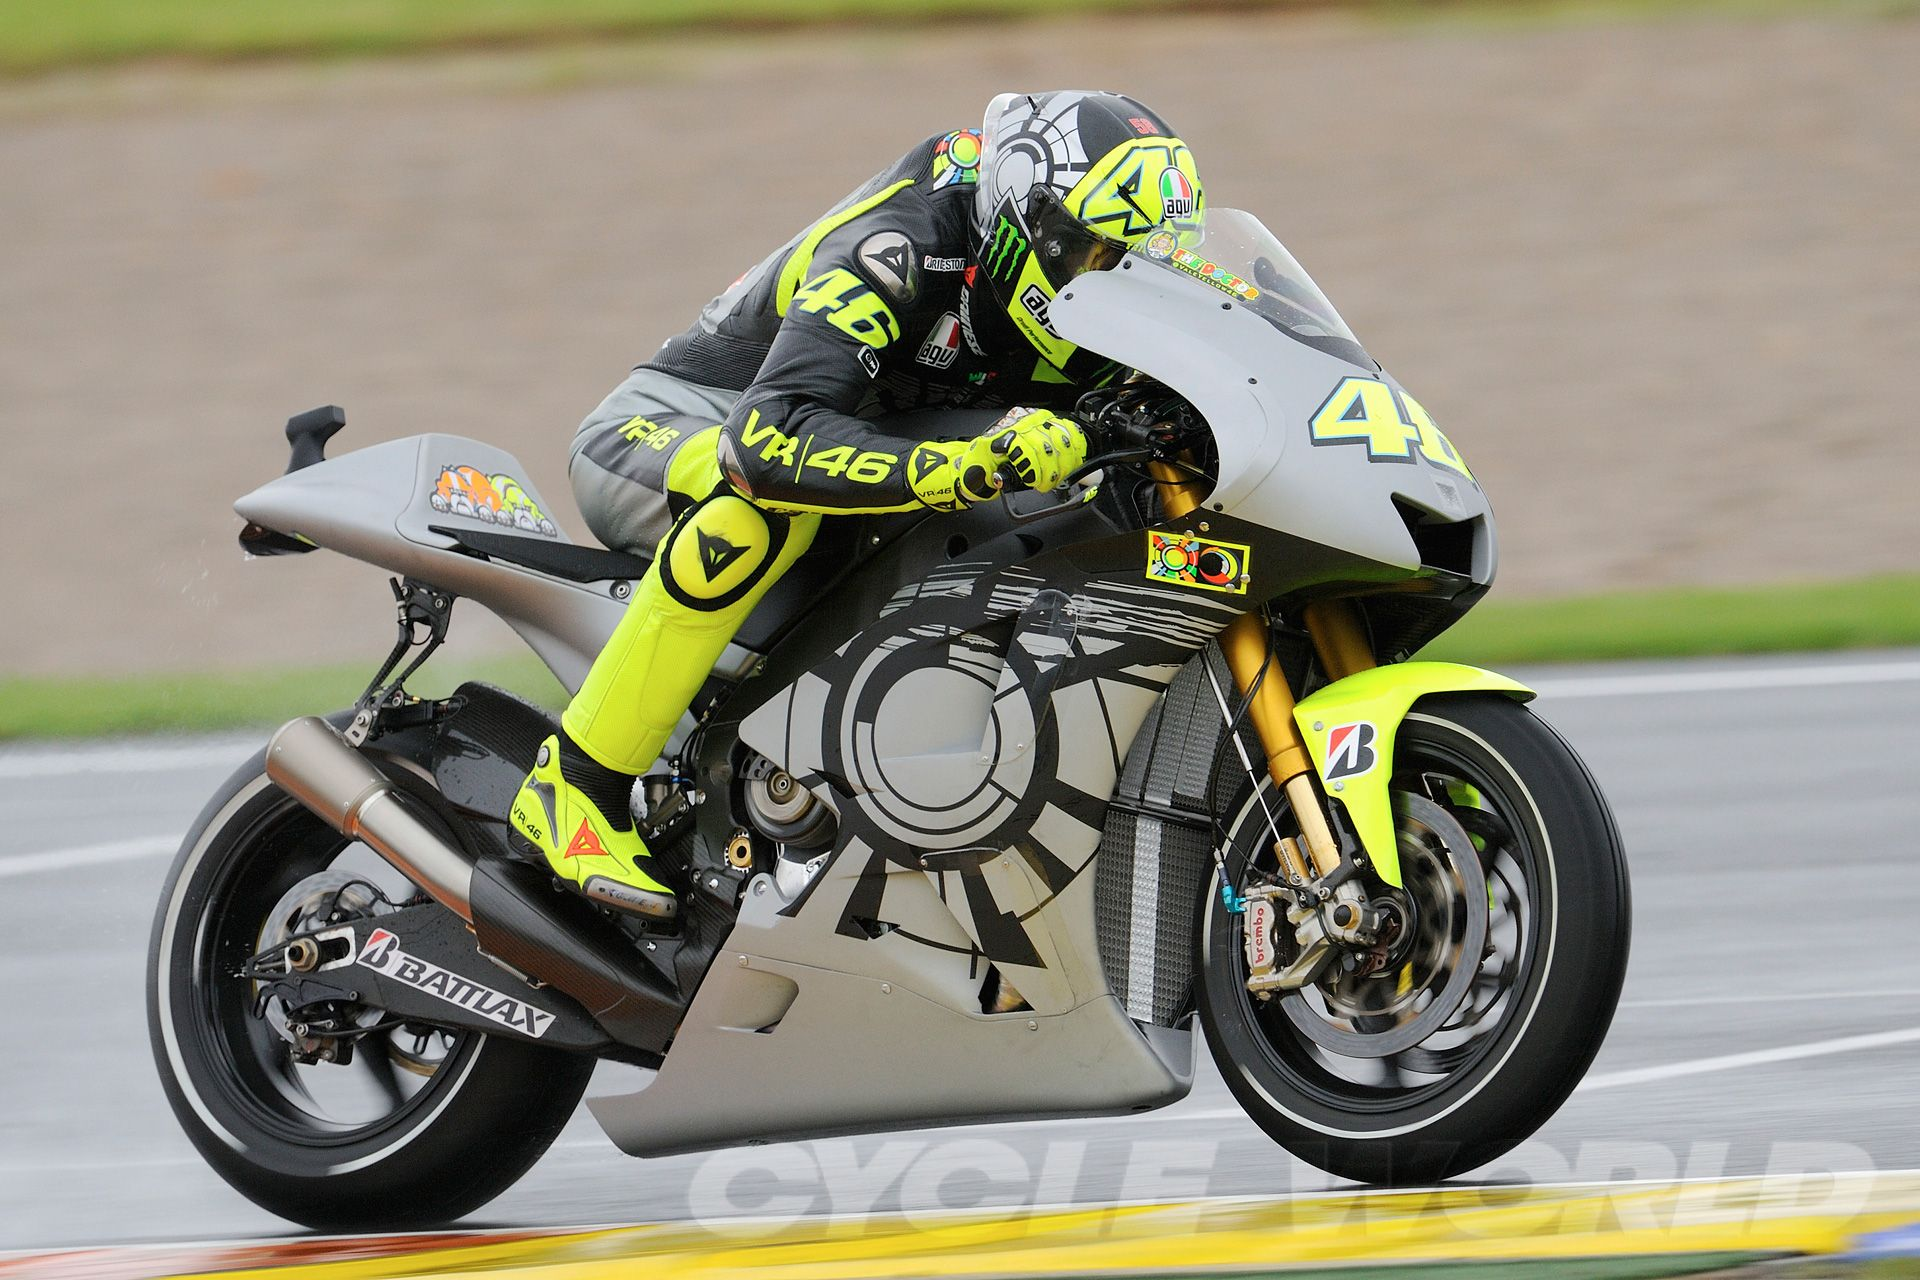 Valentino rossi wallpapers pinterest valentino rossi and vr46 valentino rossi 2013 wallpaper hd jpg x desktop wallpaper 181342 voltagebd Image collections